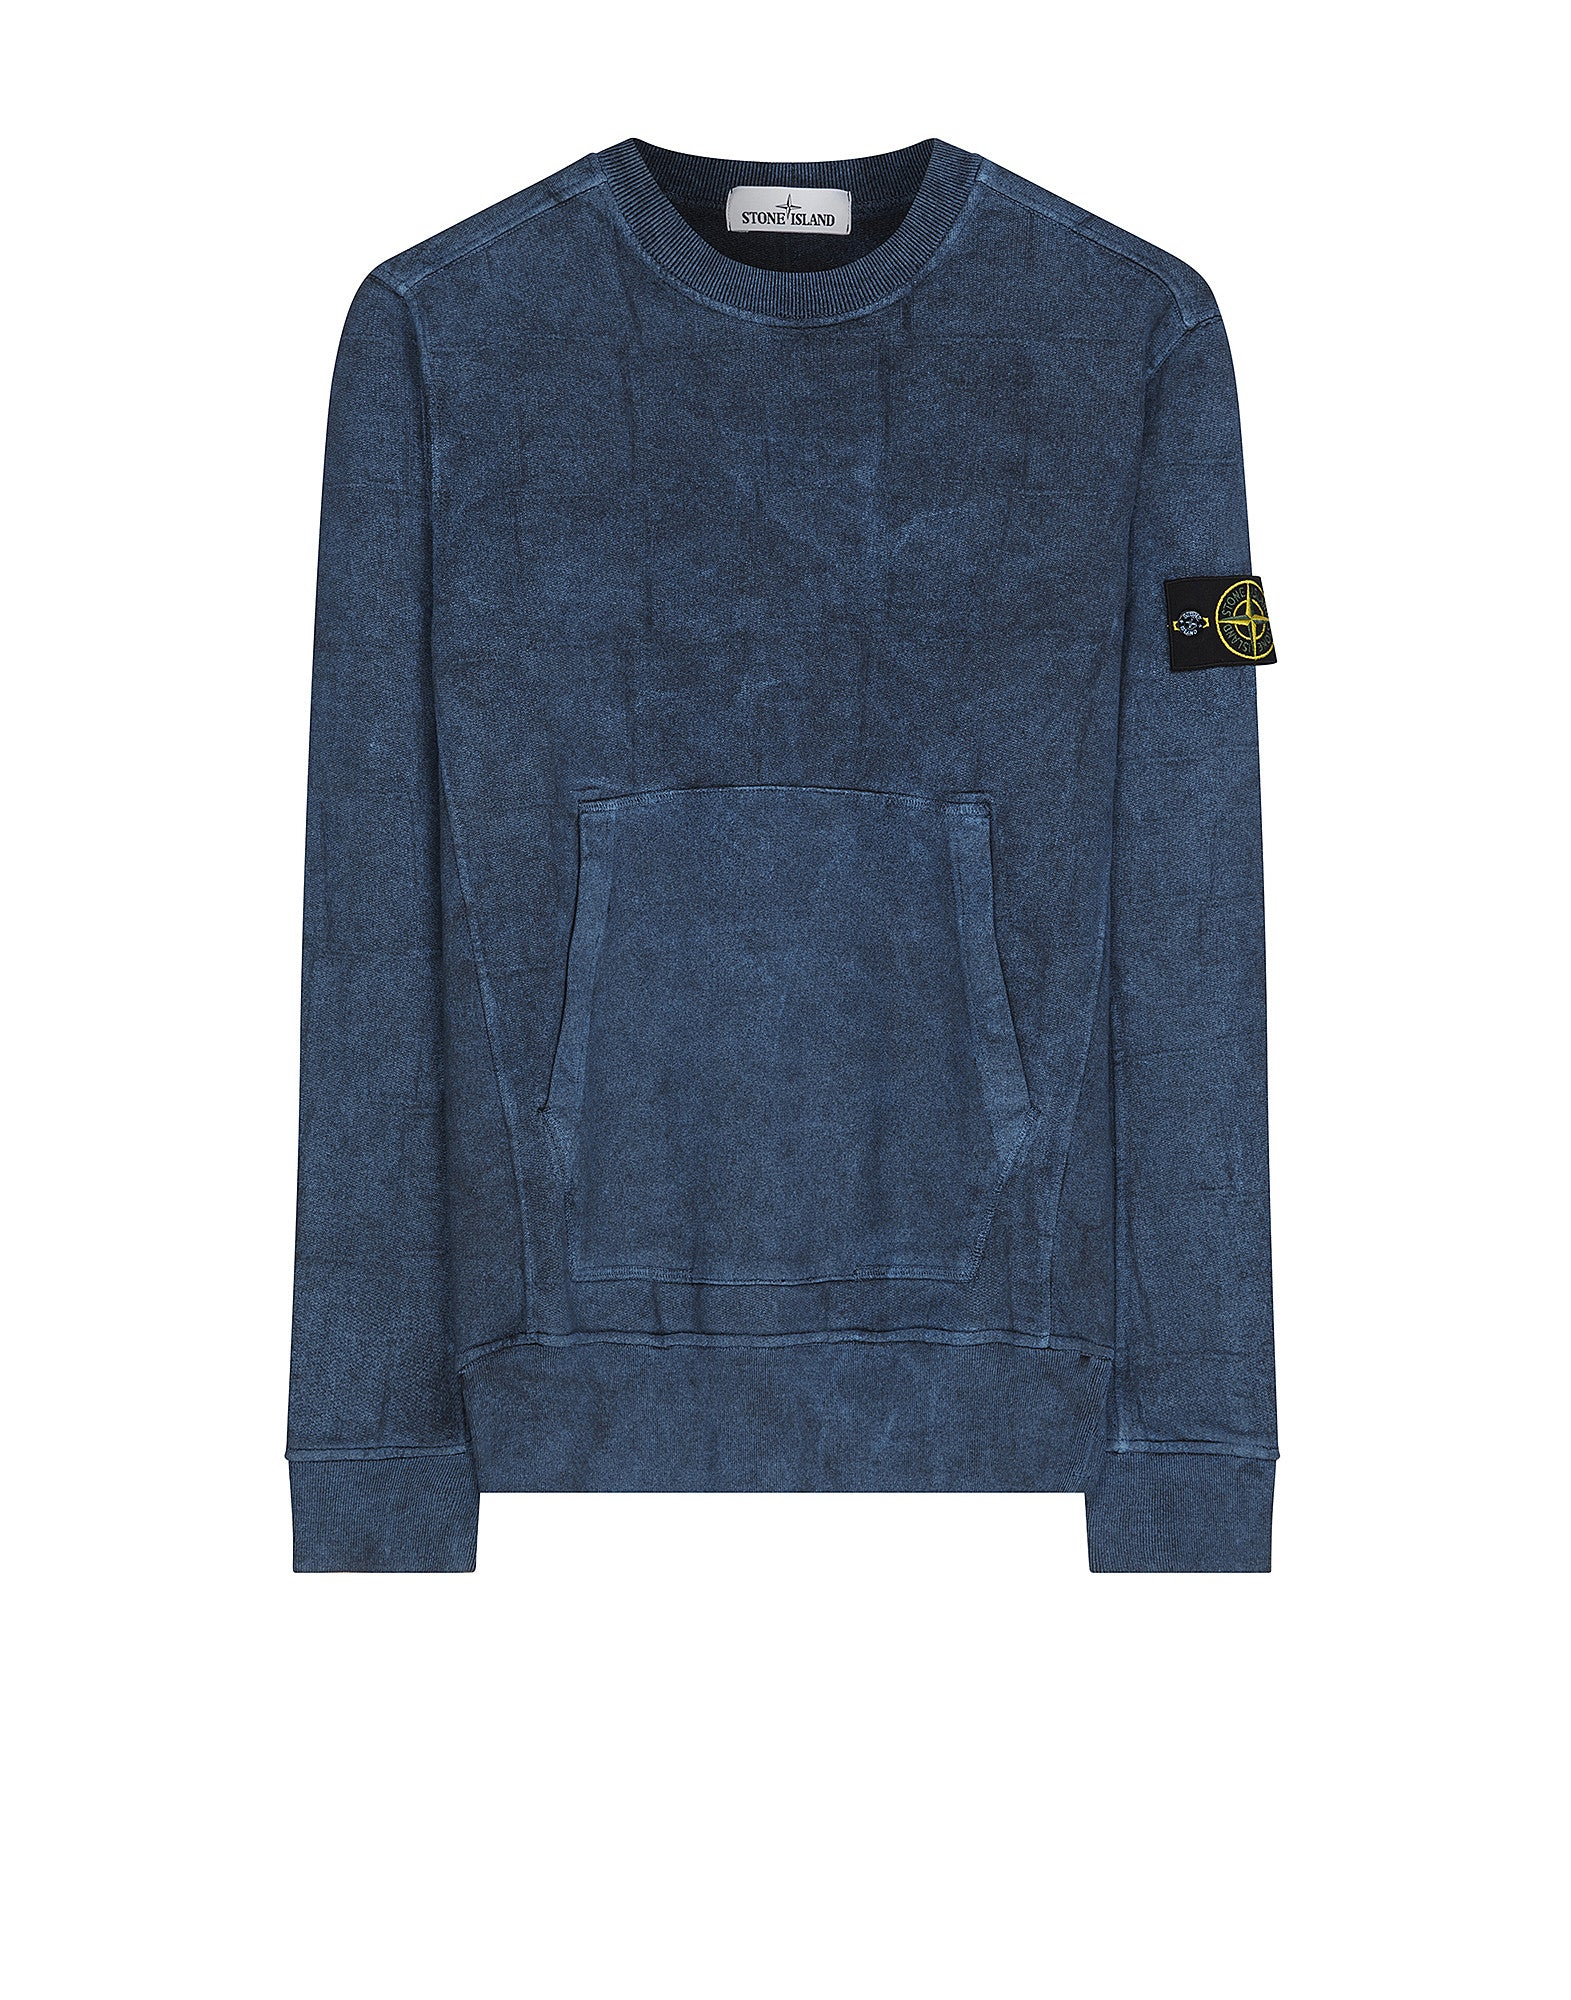 610J3 SI HOUSE CHECK WITH DUST COLOUR TREATMENT Sweatshirt in Blue